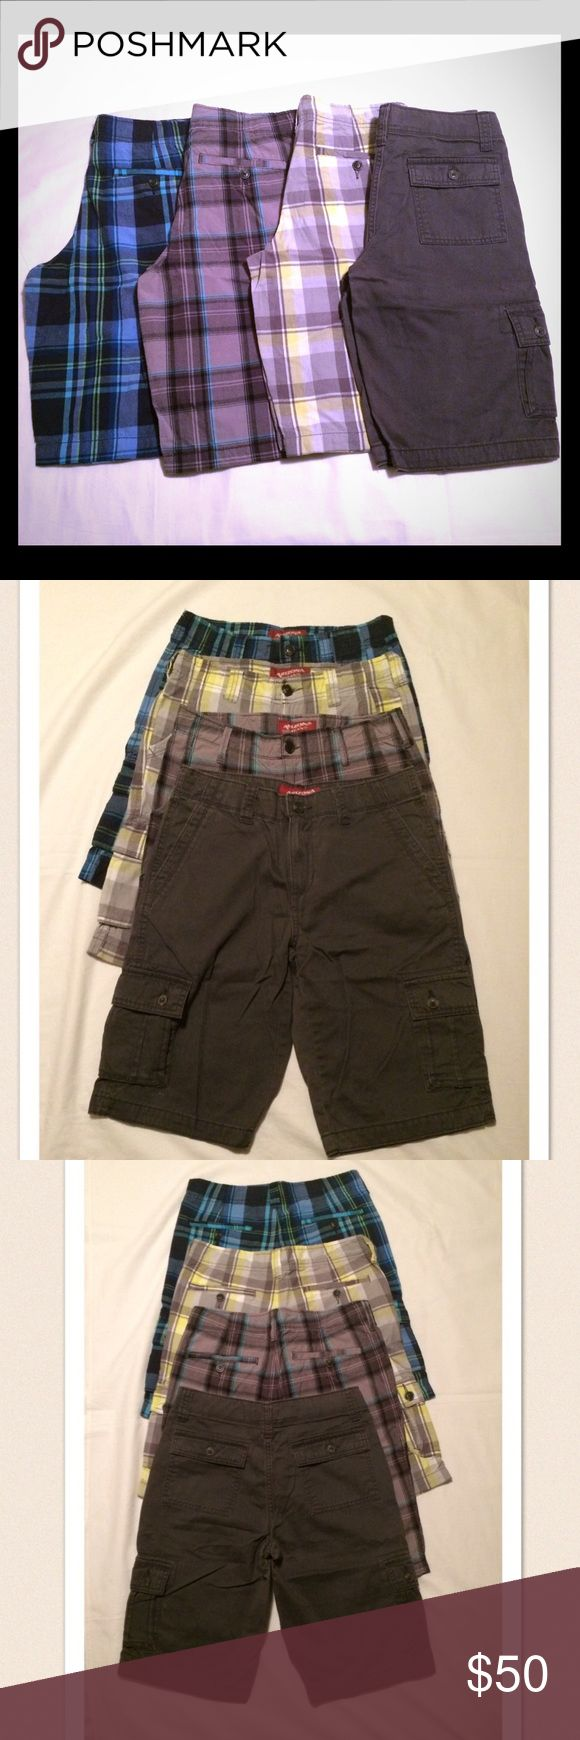 NWOT boys Arizona dress/khaki shorts NWOT boys Arizona dress/khaki shorts size 16. 3 pairs are plaid and one is an olive khaki color. They all have an adjustable waistband for a better fit. Bought these for my son and they didn't fit. Took the tags off before realizing that so I can't return them. Paid $15 each for these. Arizona Jean Company Bottoms Shorts